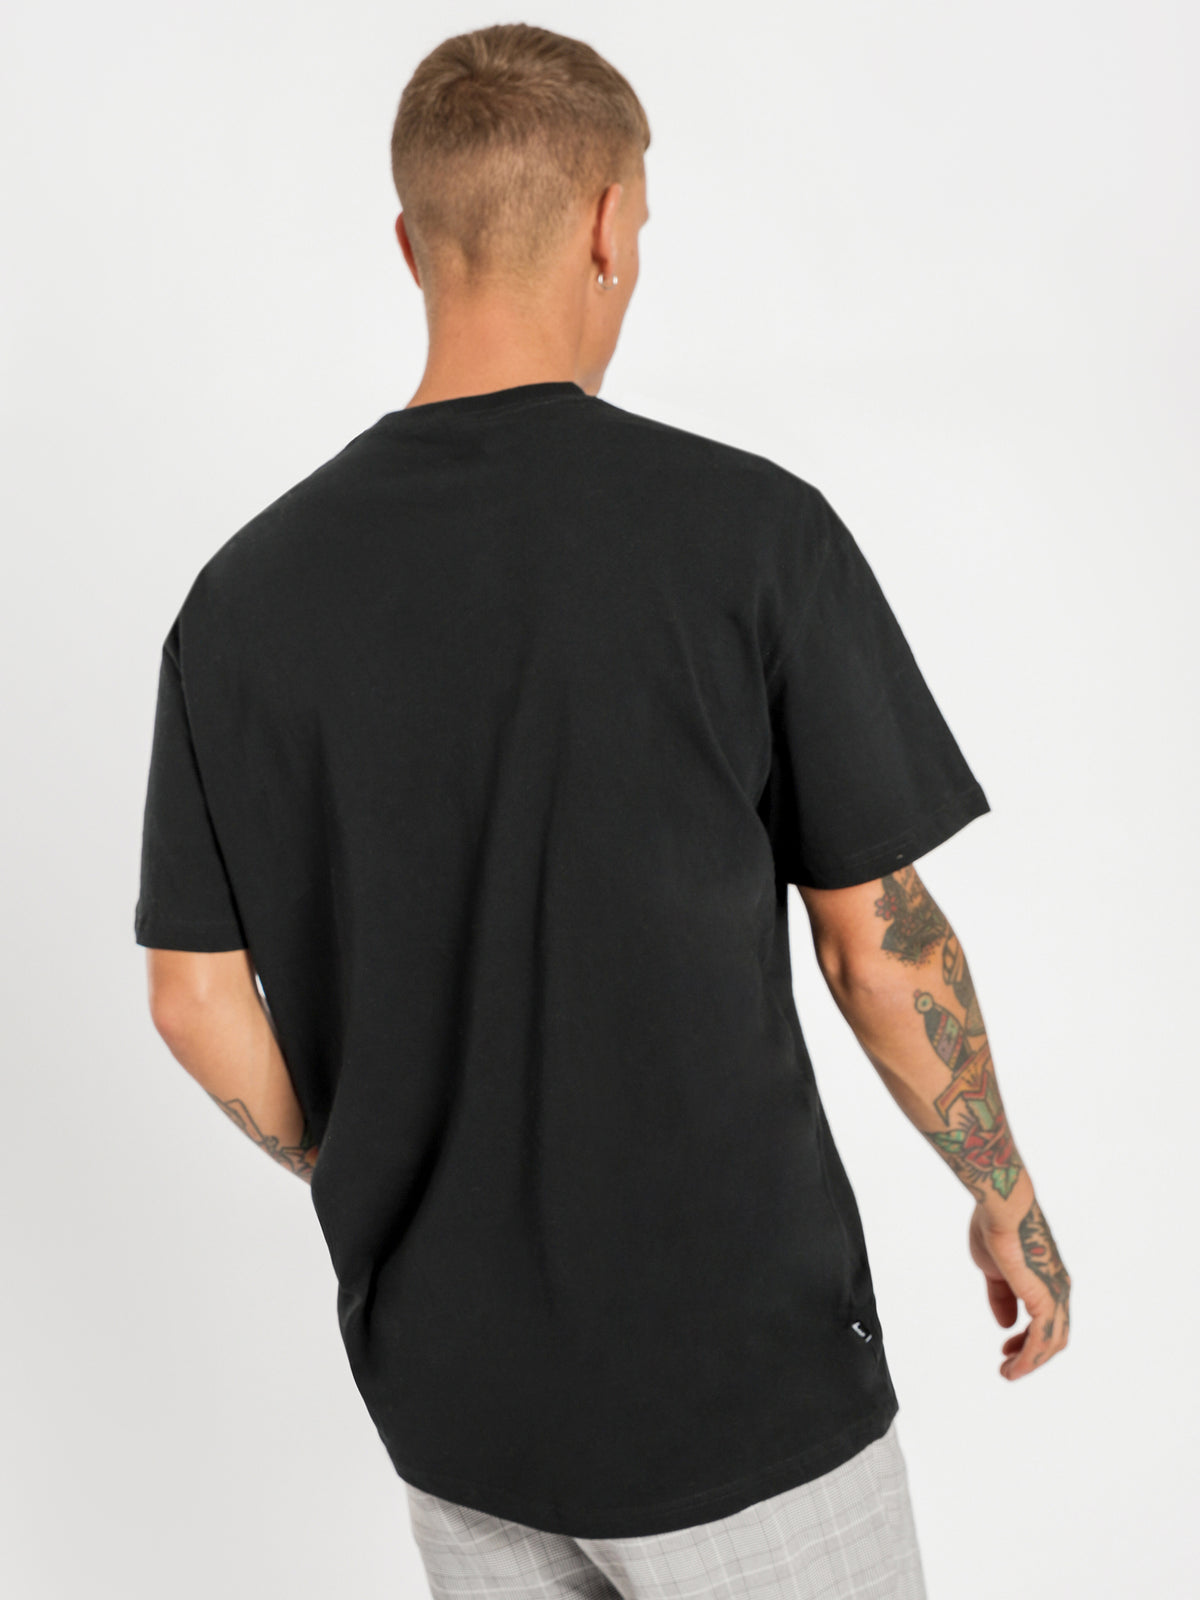 Solid Tour Short Sleeve T-Shirt in Black